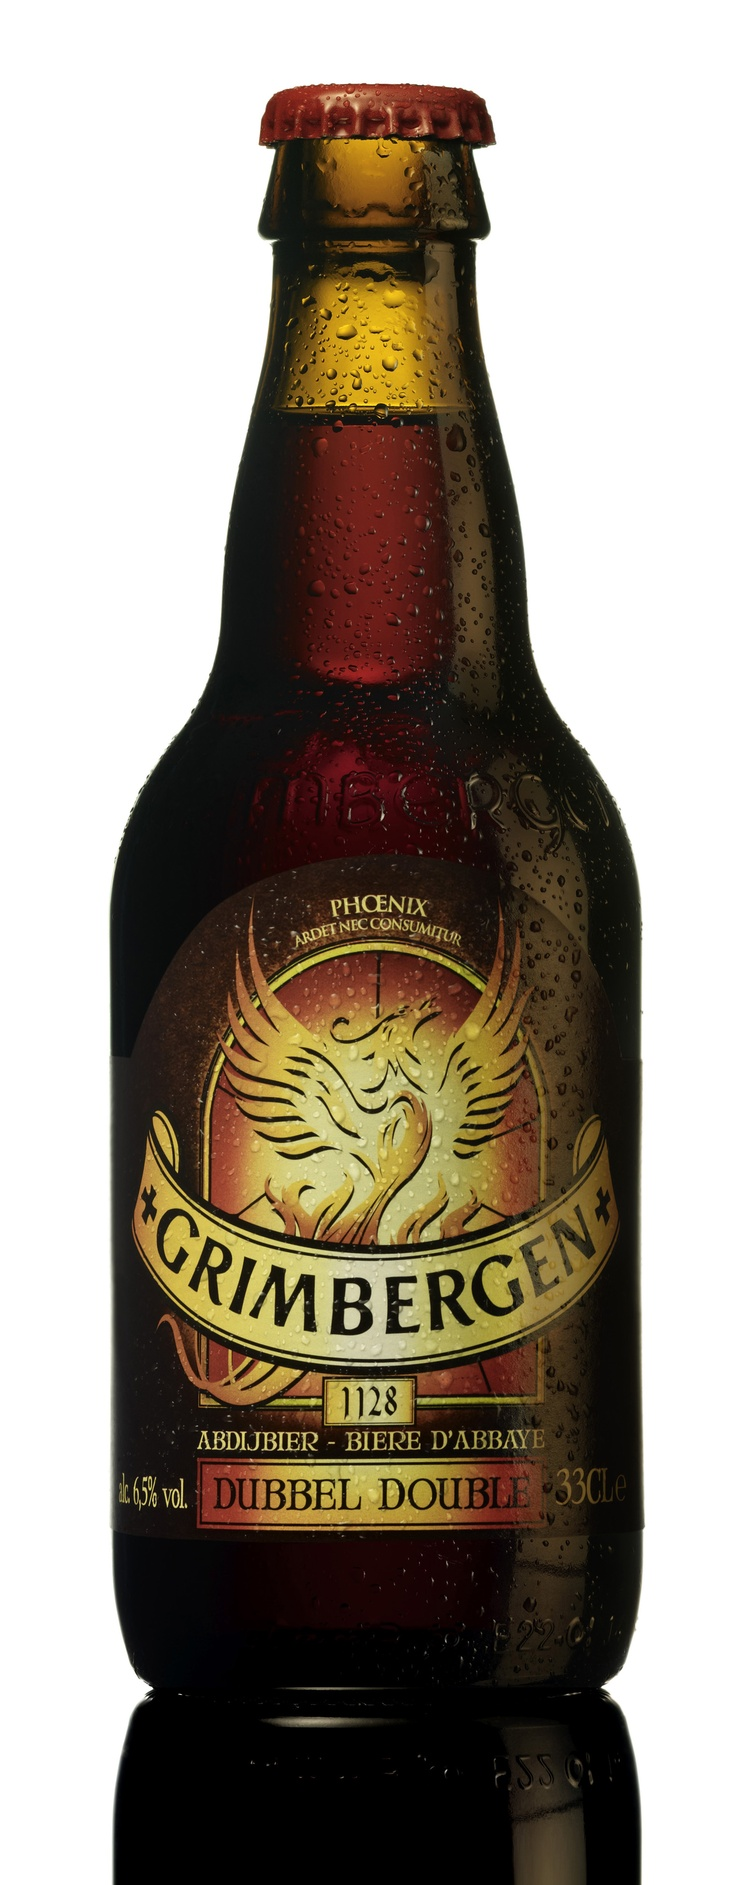 So far...my favorite beer.  Grimbergen Dubbel